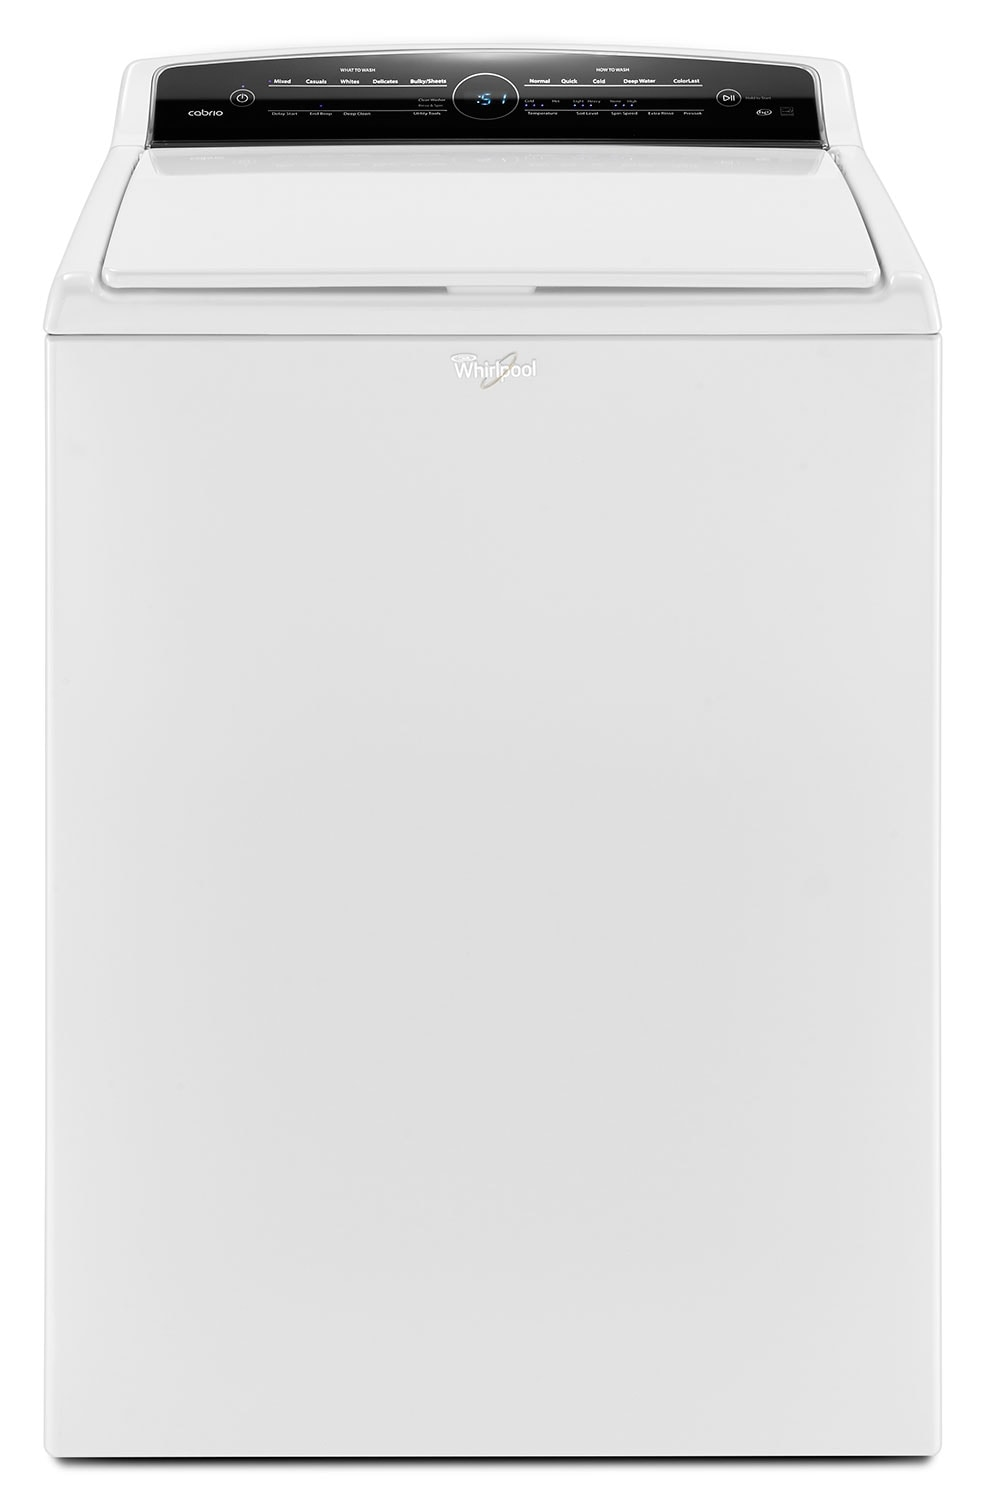 Topload Washer Whirlpoolar 55 Cu Ft Cabrioar High Efficiency Top Load Washer